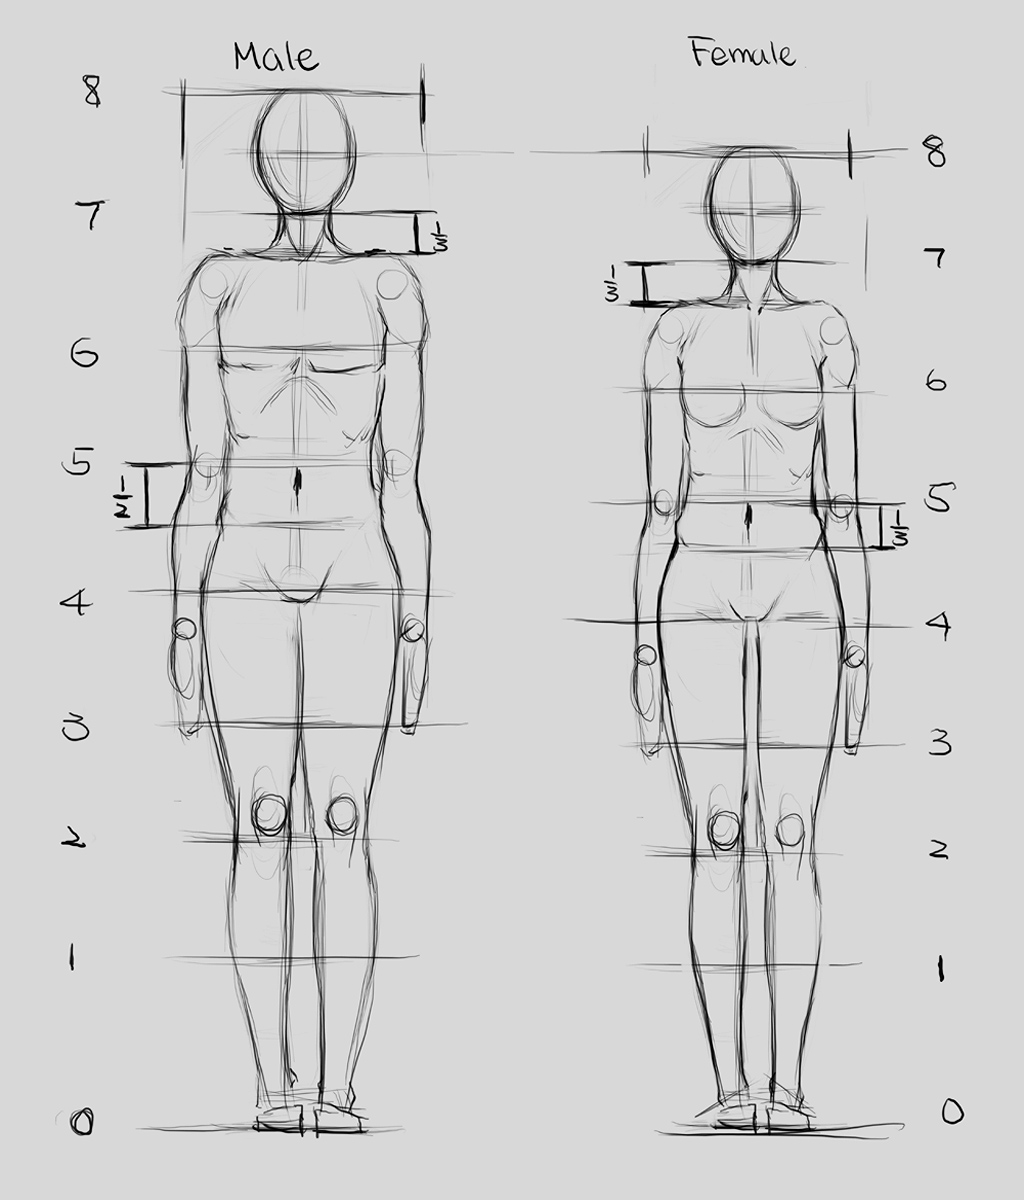 Proportions 1 By Renevatia On Deviantart